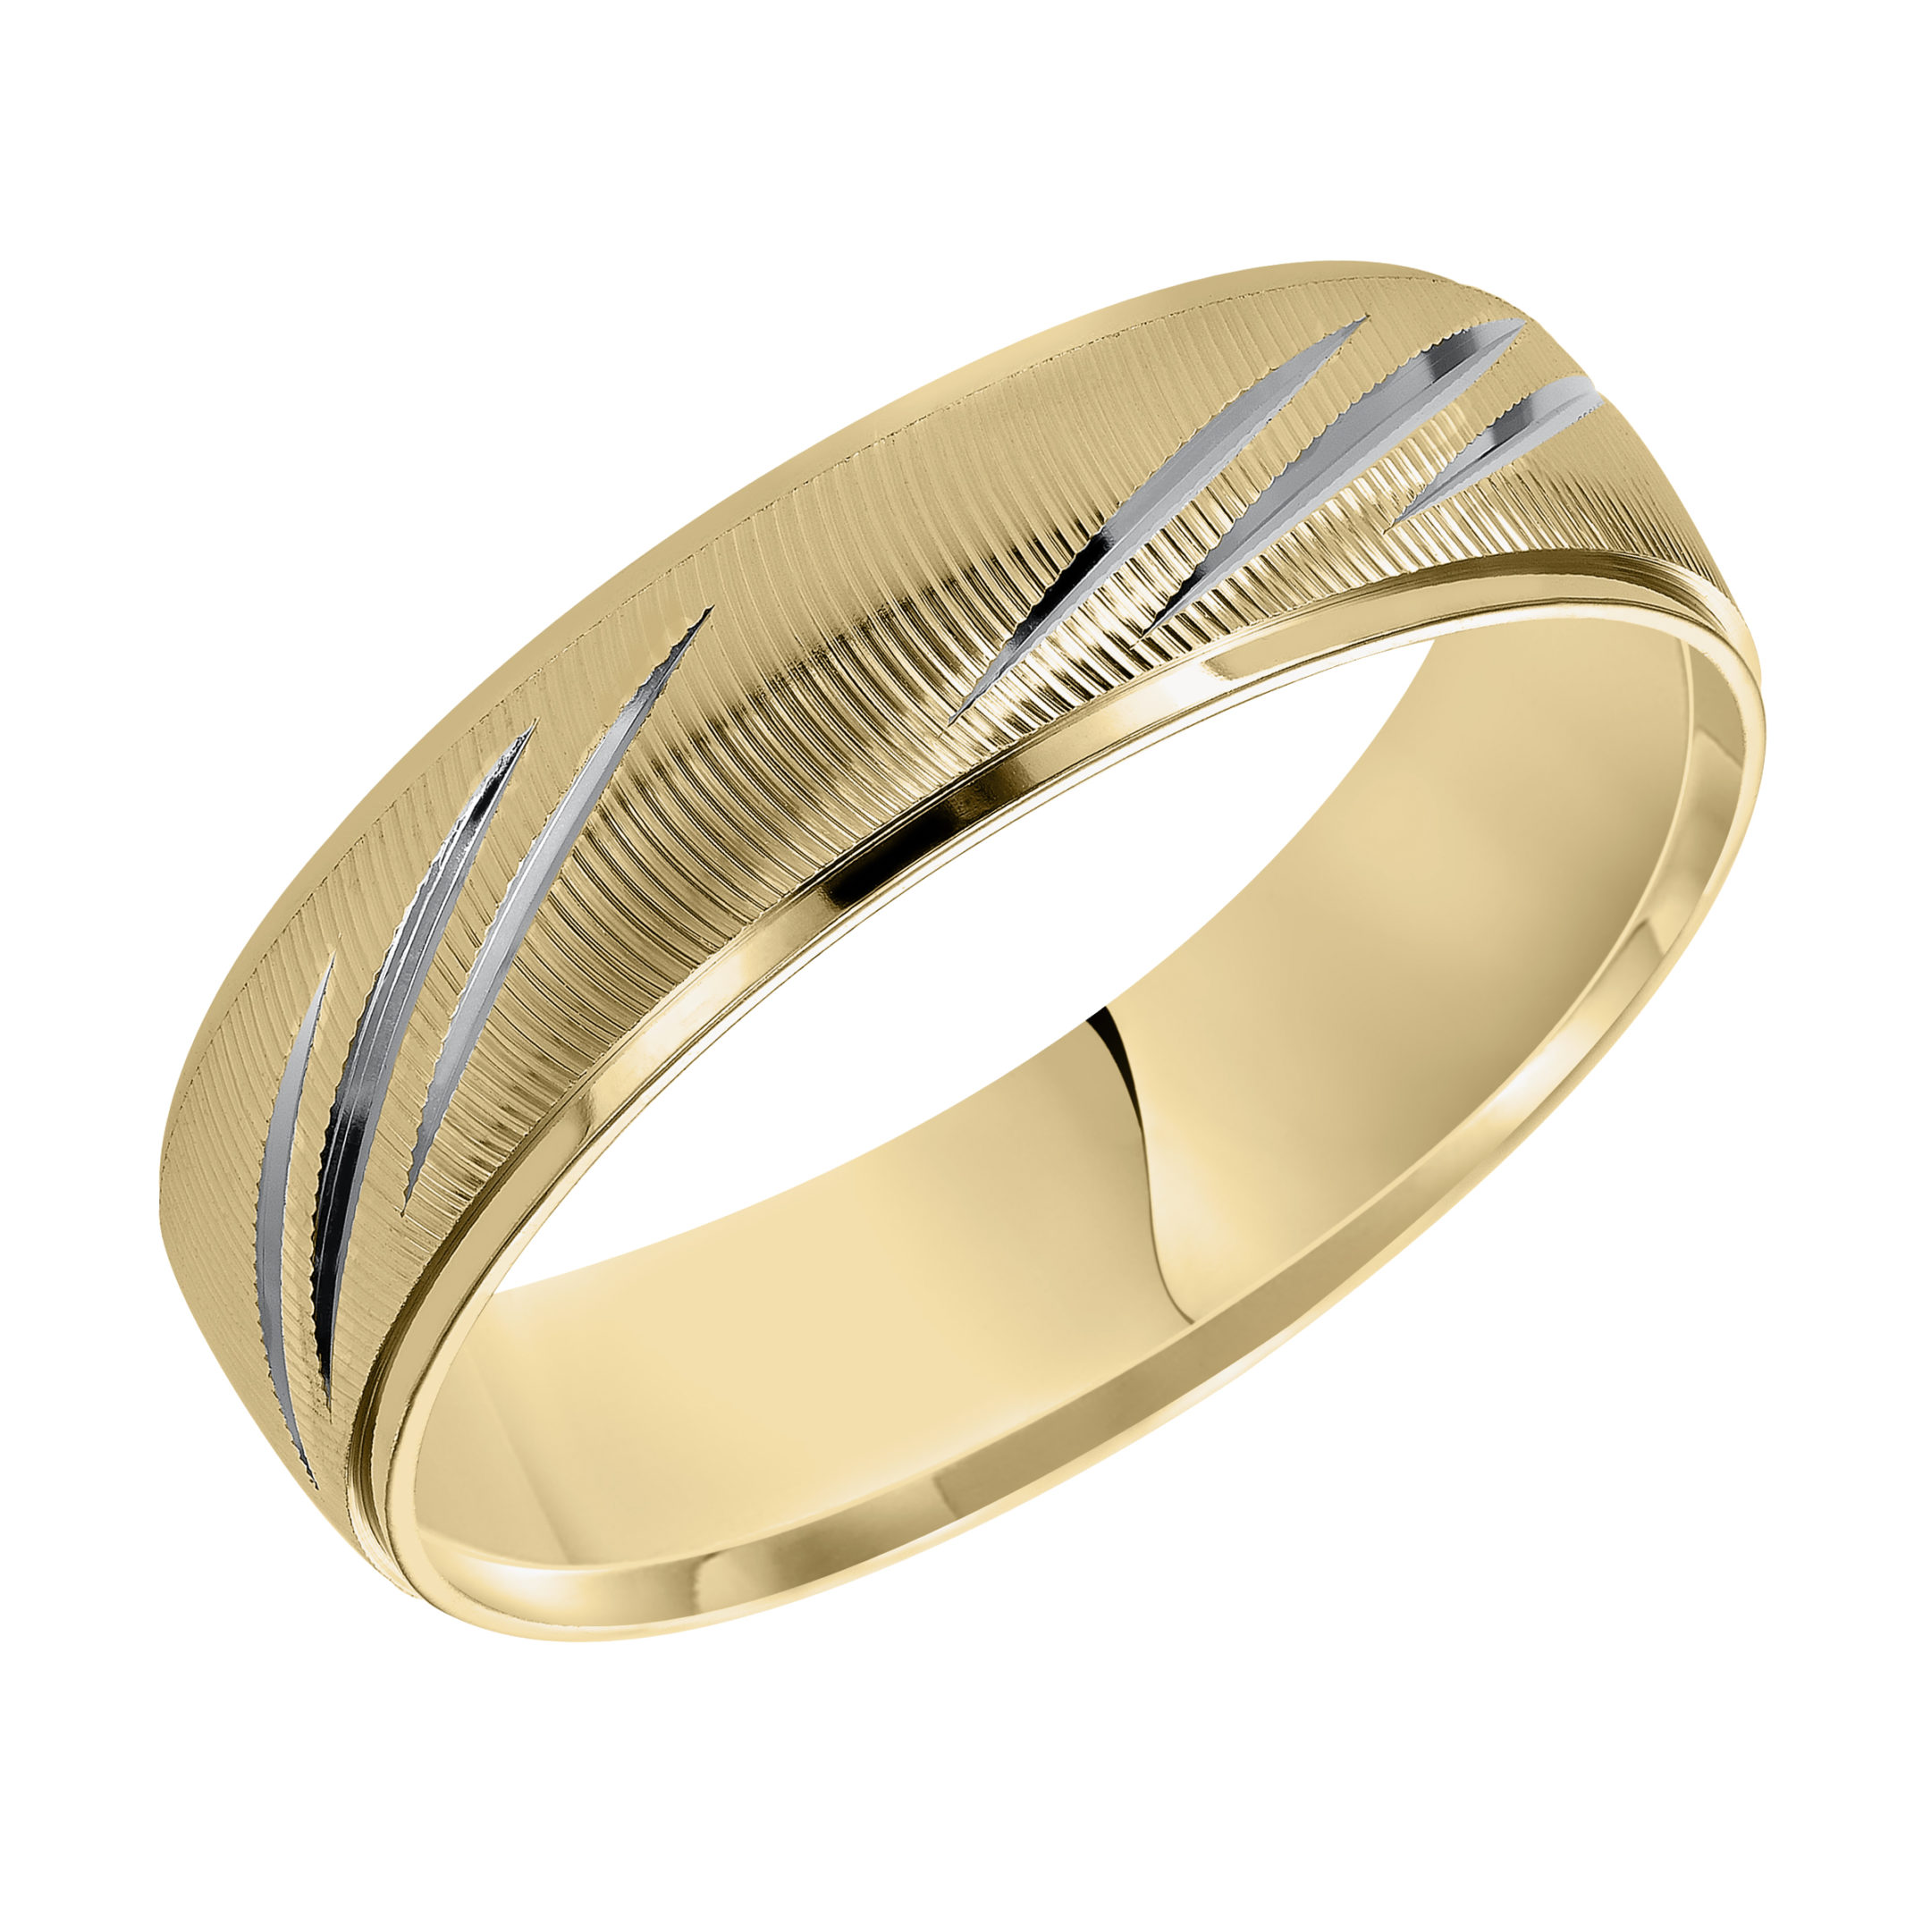 Vertical Fine Line Finish & Round Edges Wedding Band in 14k Yellow Gold & Rhodium - angle view